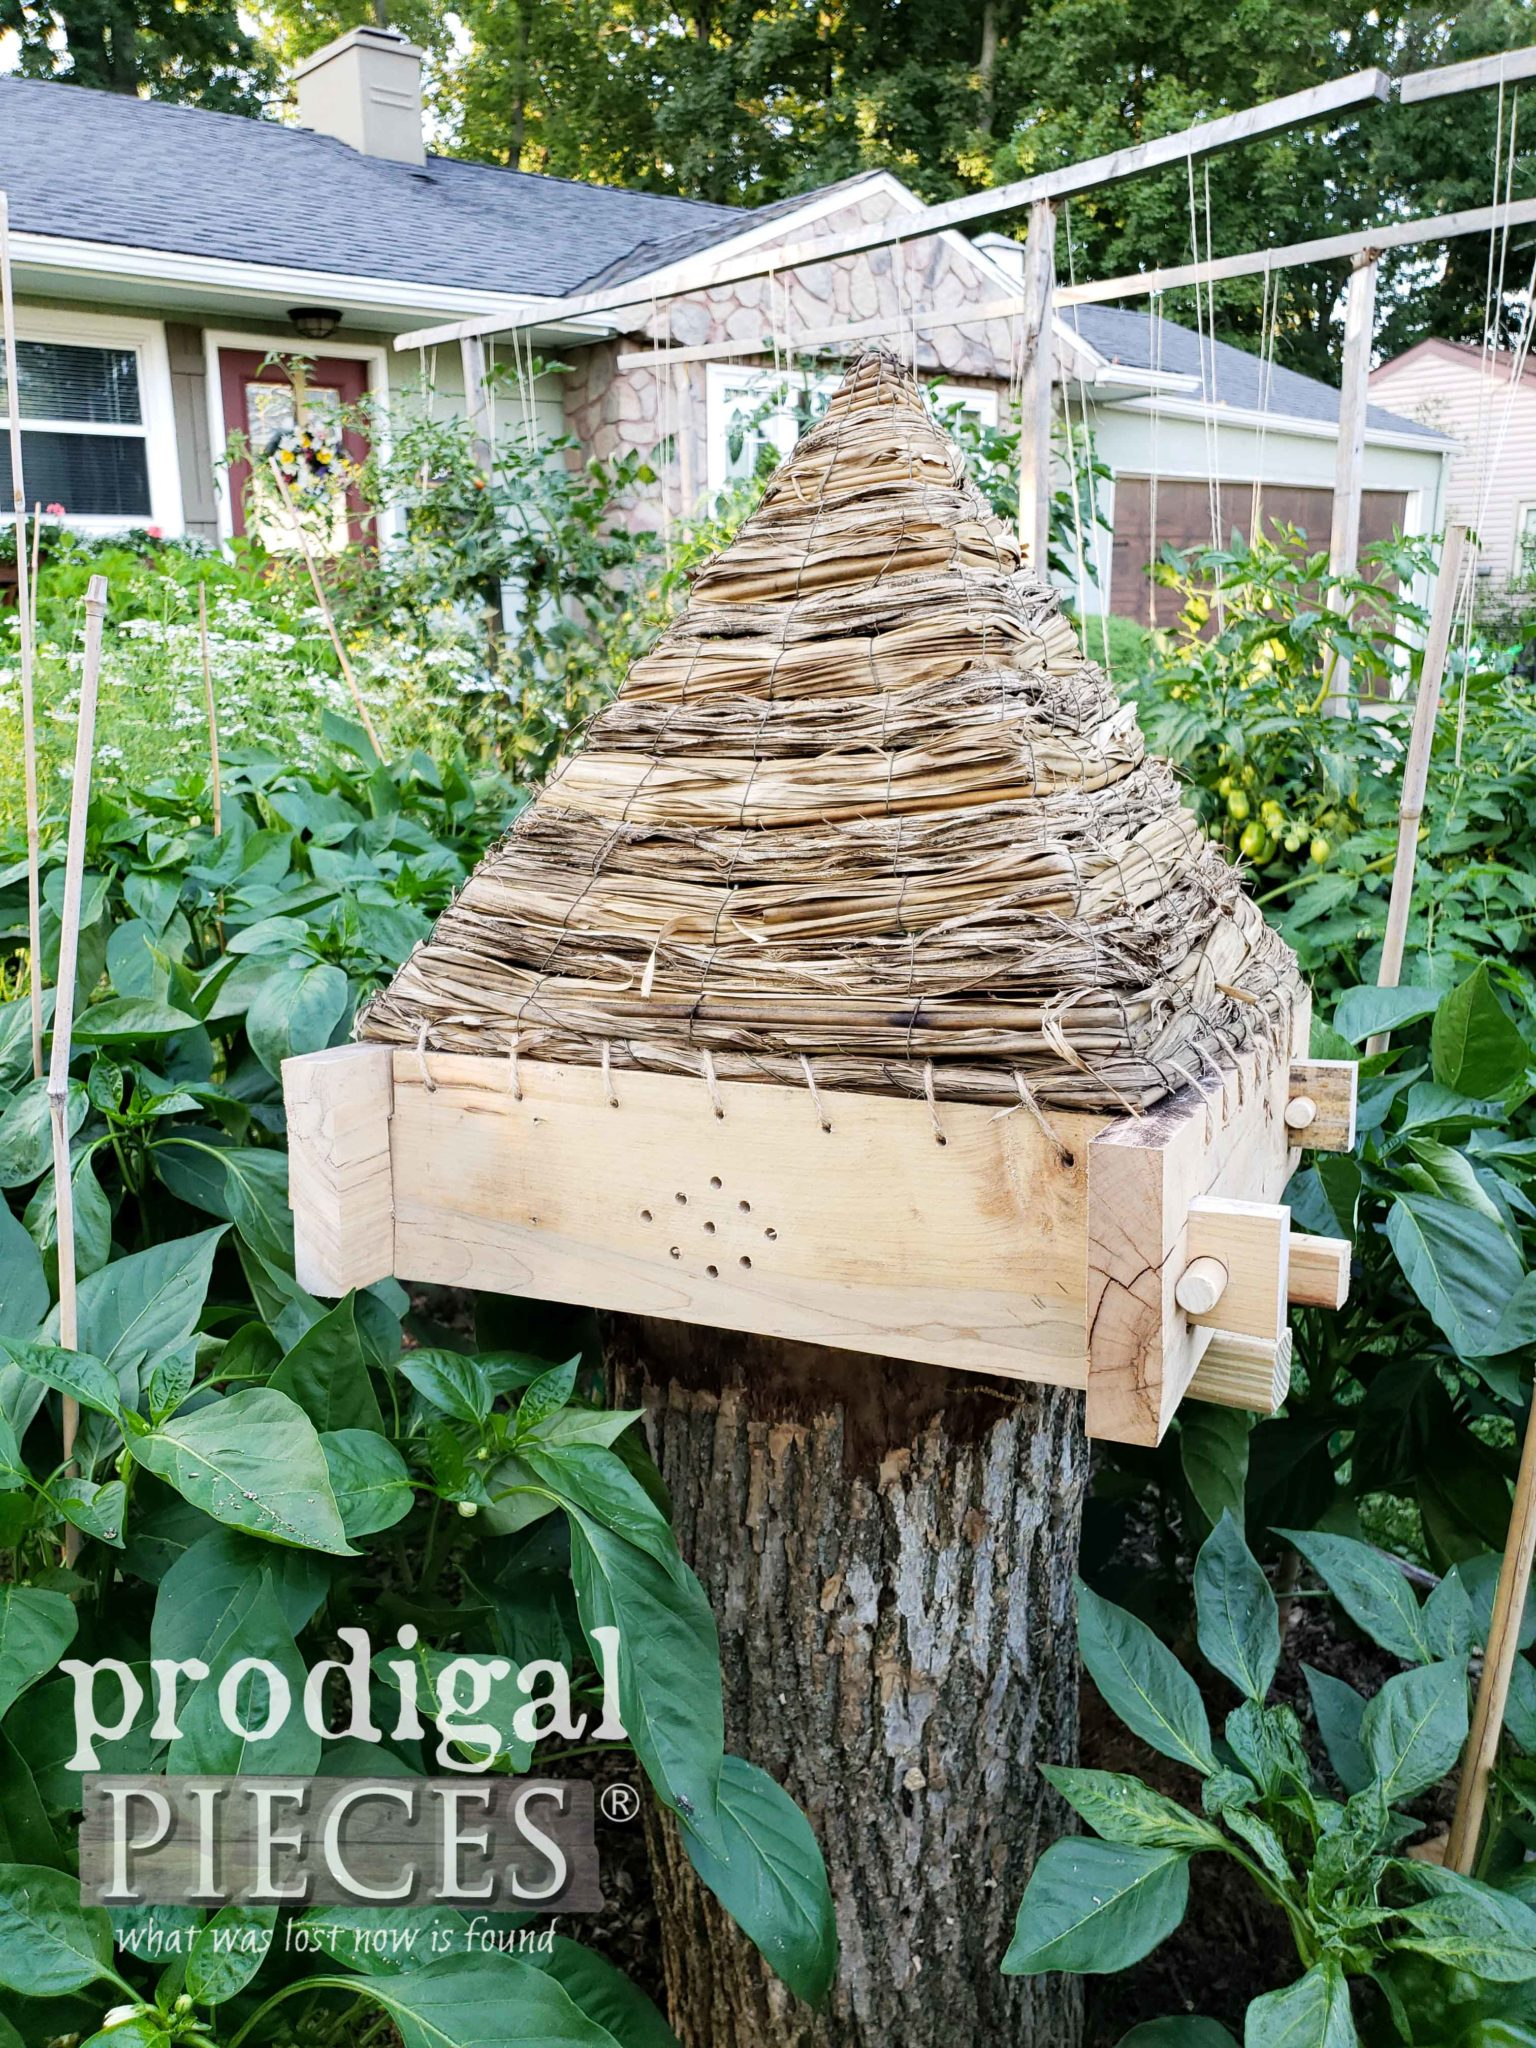 Garden Bee Skep for Decorative Garden Design Made Out of Upcycled Materials by Larissa of Prodigal Pieces | prodigalpieces.com